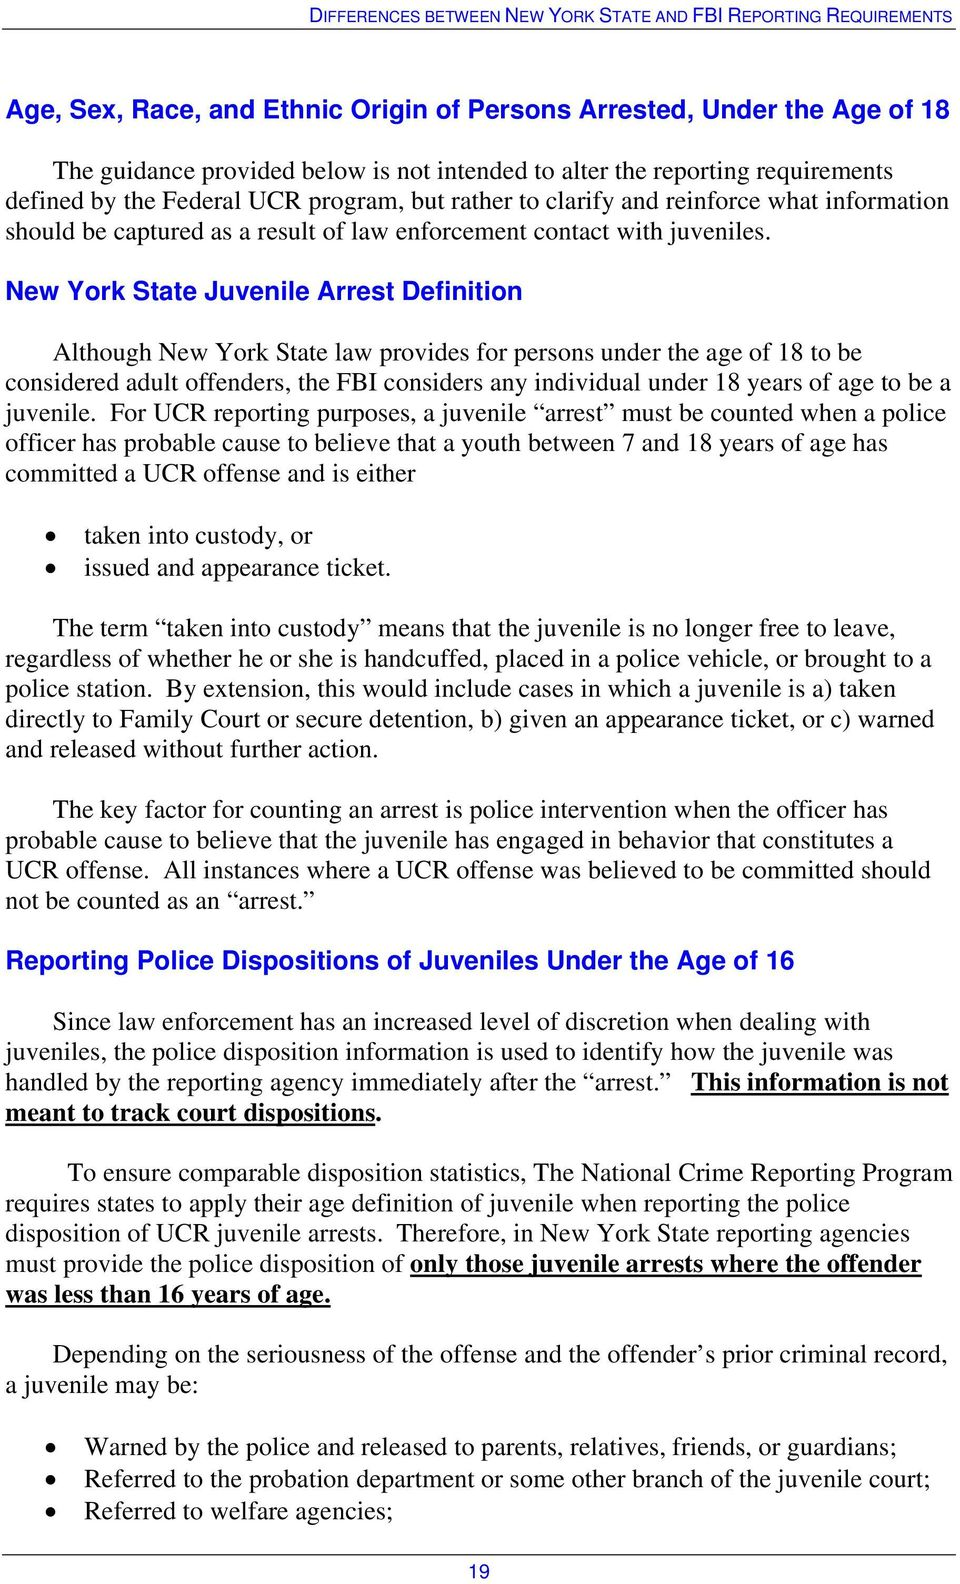 New York State Juvenile Arrest Definition Although New York State law provides for persons under the age of 8 to be considered adult offenders, the FBI considers any individual under 8 years of age